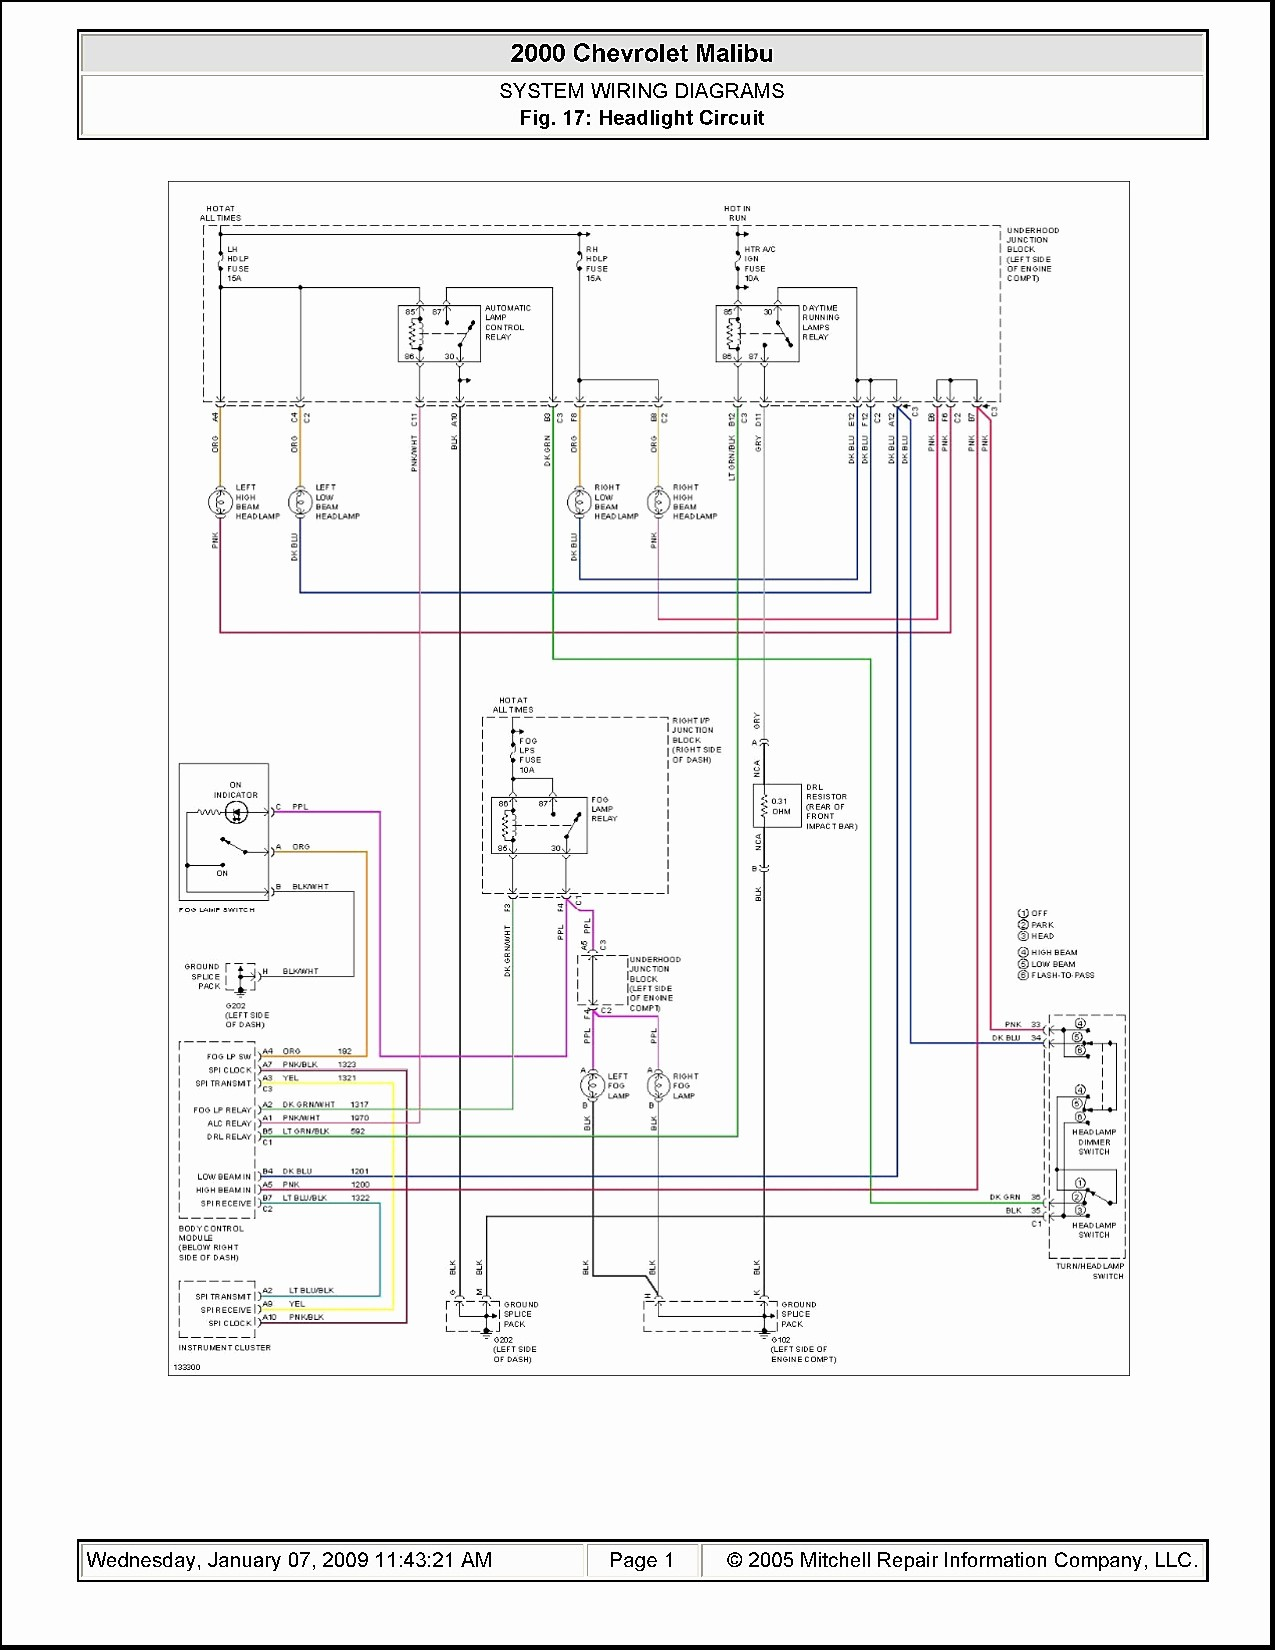 2003 Venture Wiring Diagram List Of Wiring Diagrams